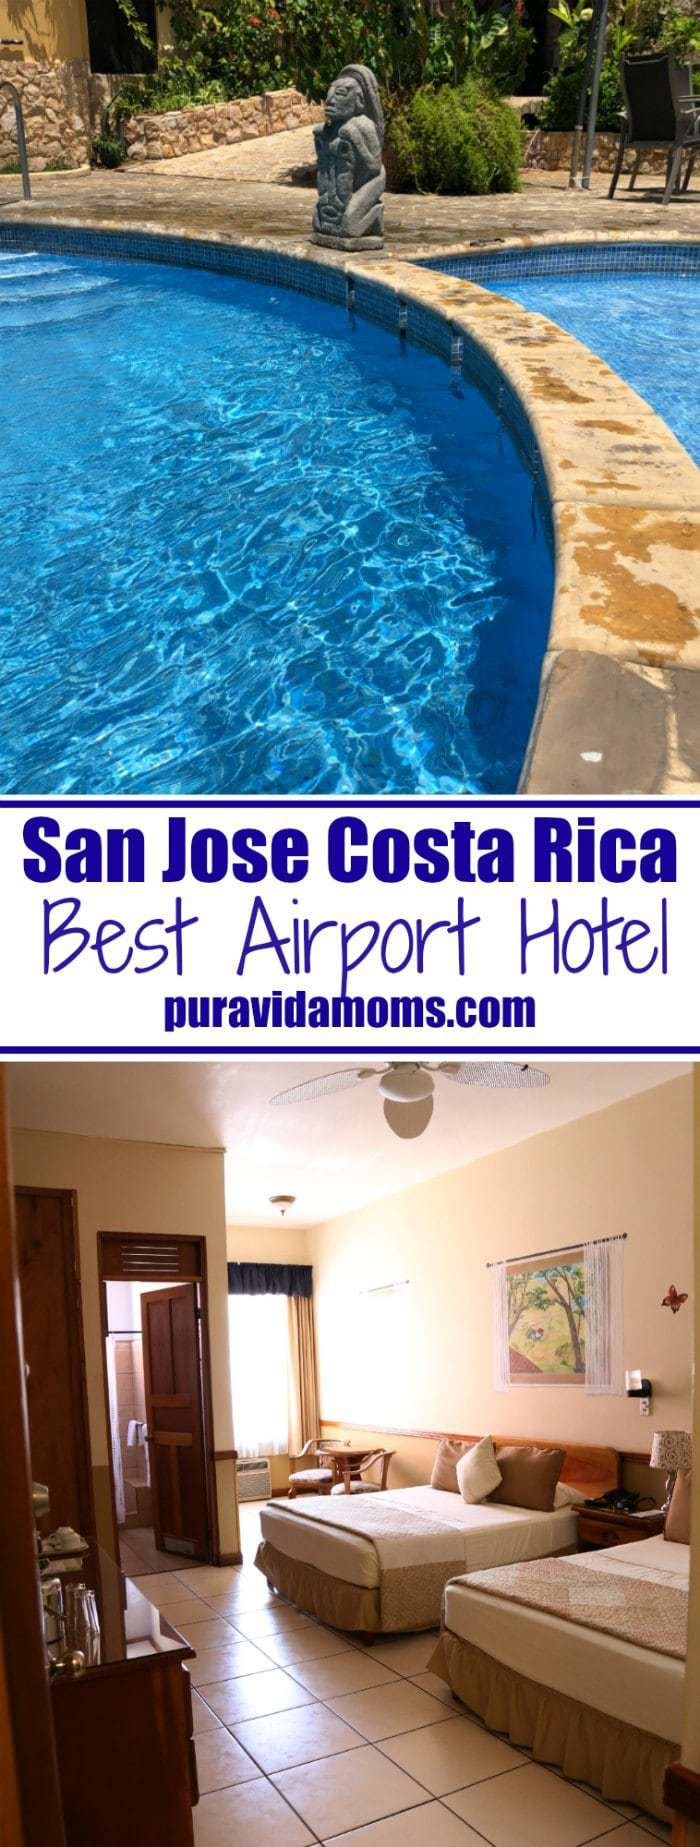 Best Airport Hotel San Jose Costa Rica